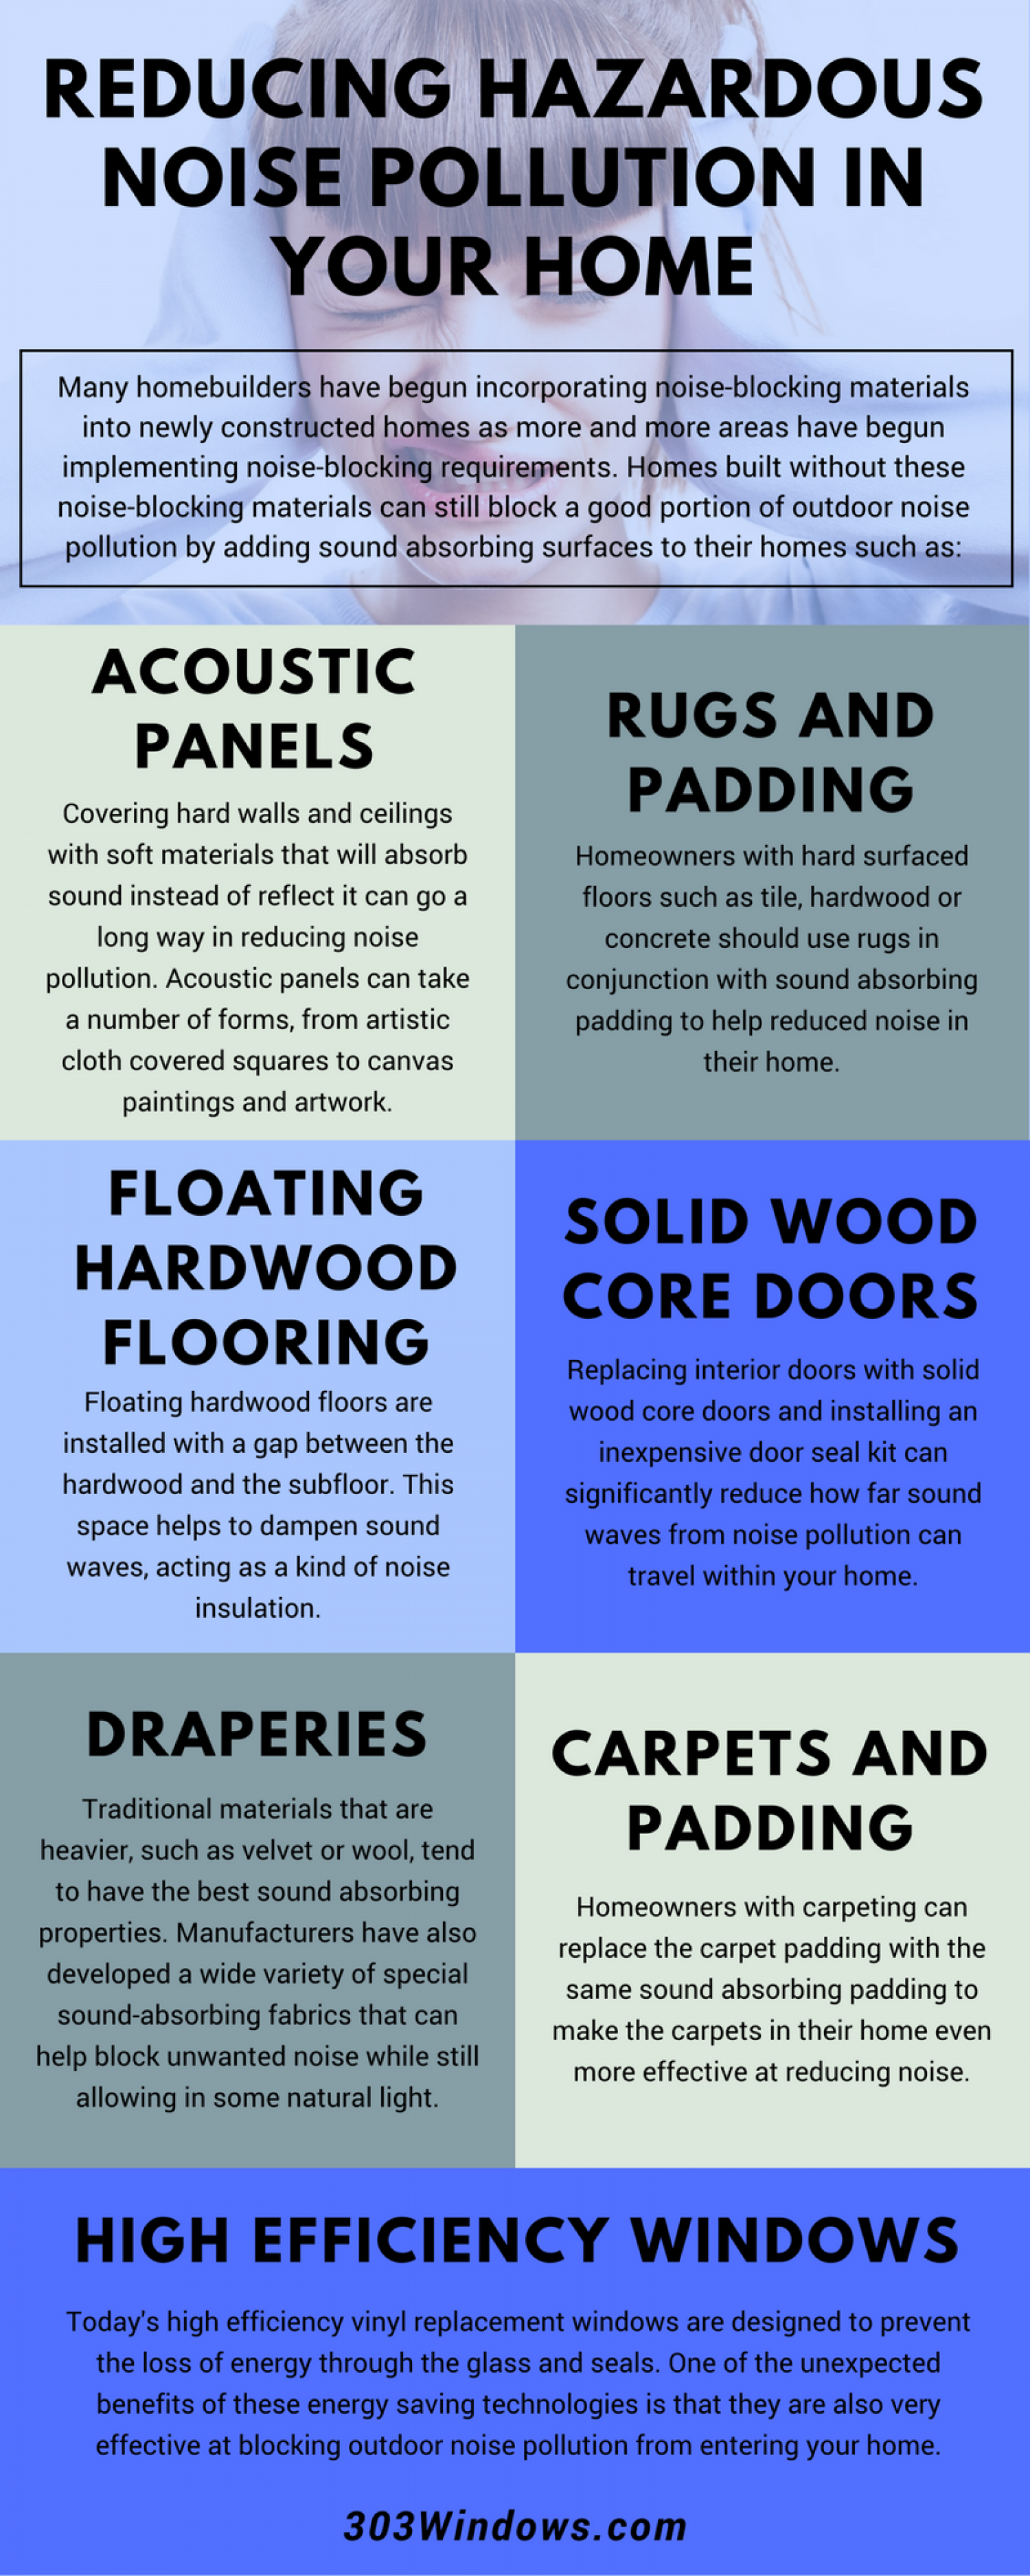 Reducing Hazardous Noise Pollution in Your Home Infographic Infographic